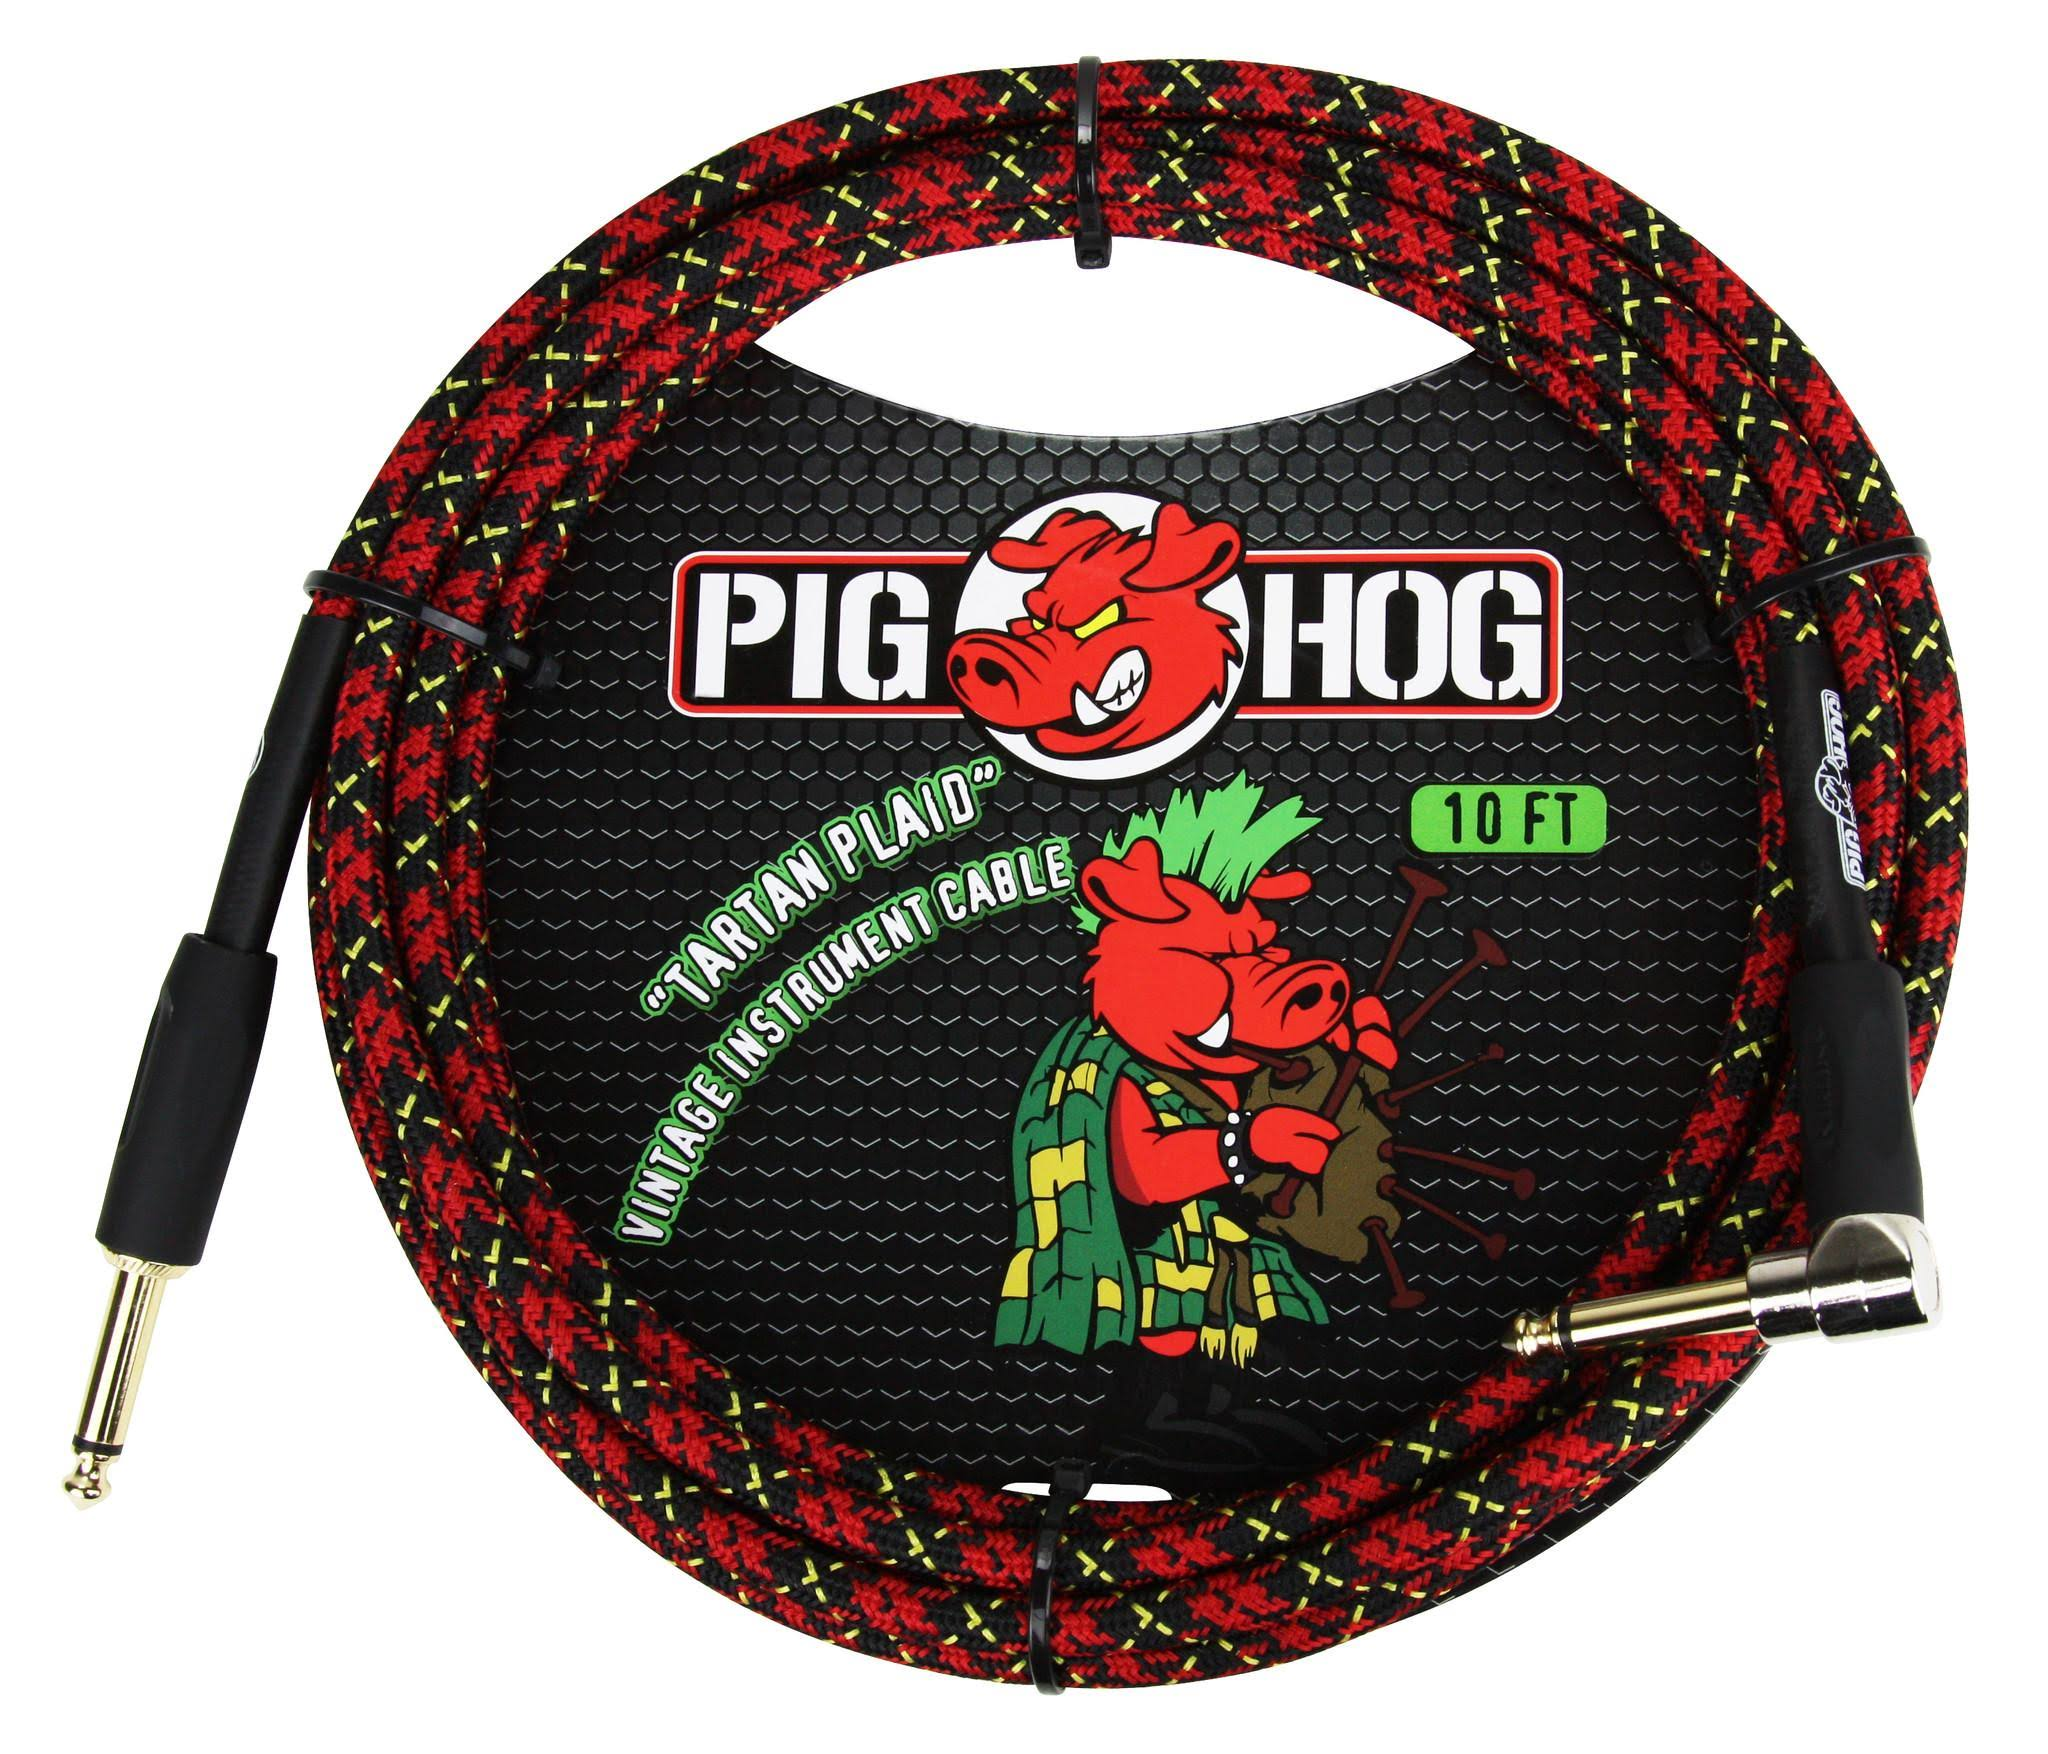 Pig Hog Right Angle Instrument Cable - 10', Tartan Plaid